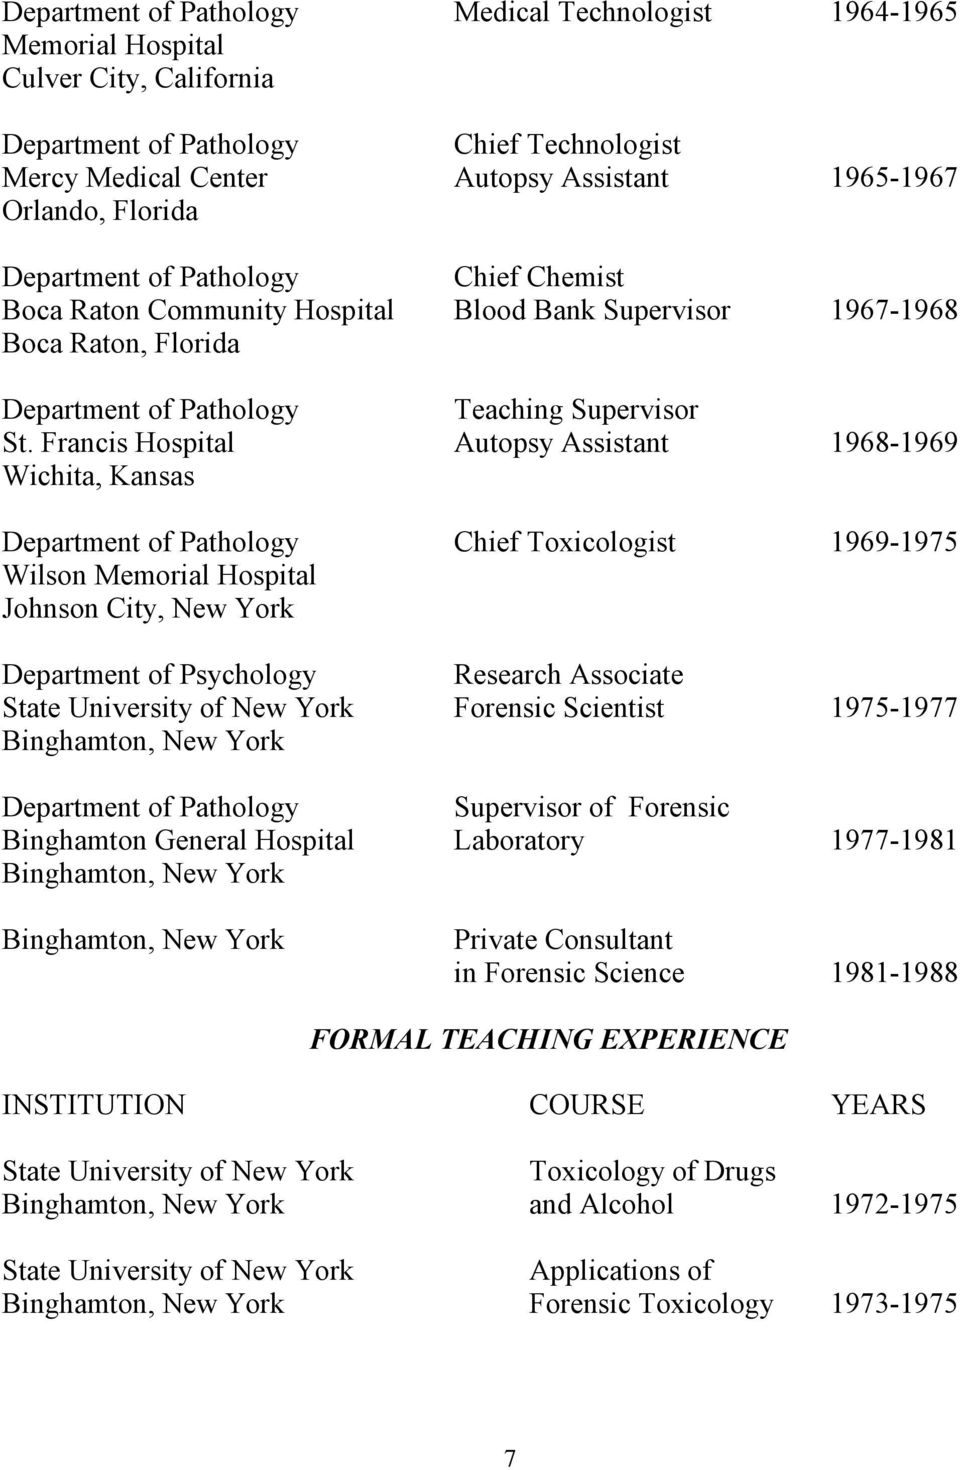 Francis Hospital Autopsy Assistant 1968-1969 Wichita, Kansas Department of Pathology Chief Toxicologist 1969-1975 Wilson Memorial Hospital Johnson City, New York Department of Psychology Research